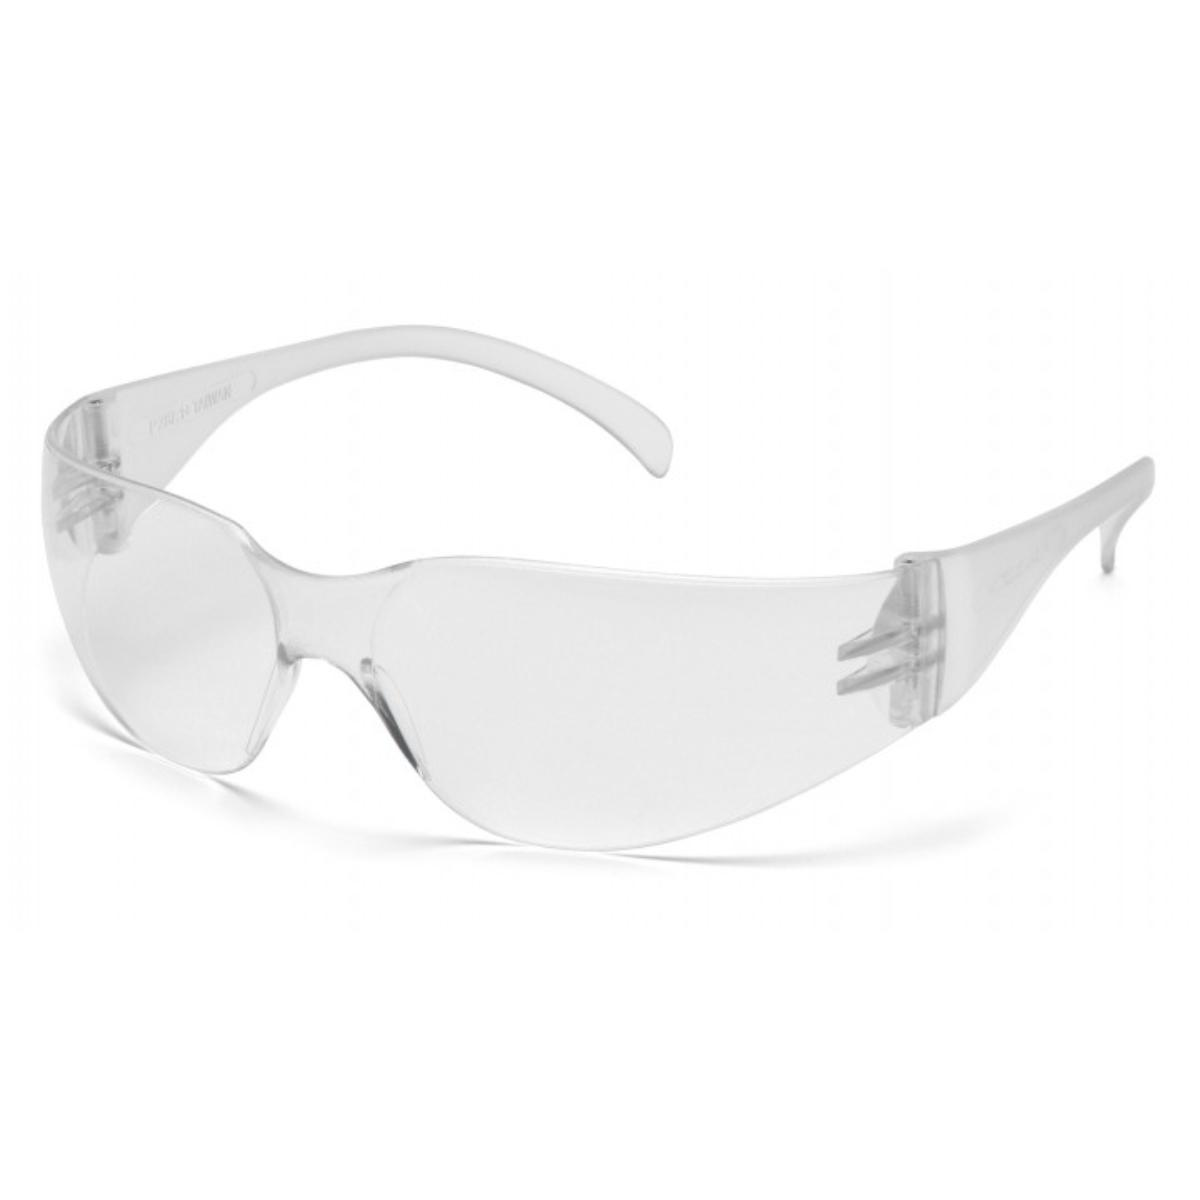 Clear Frame/Clear-Hardcoated Lens